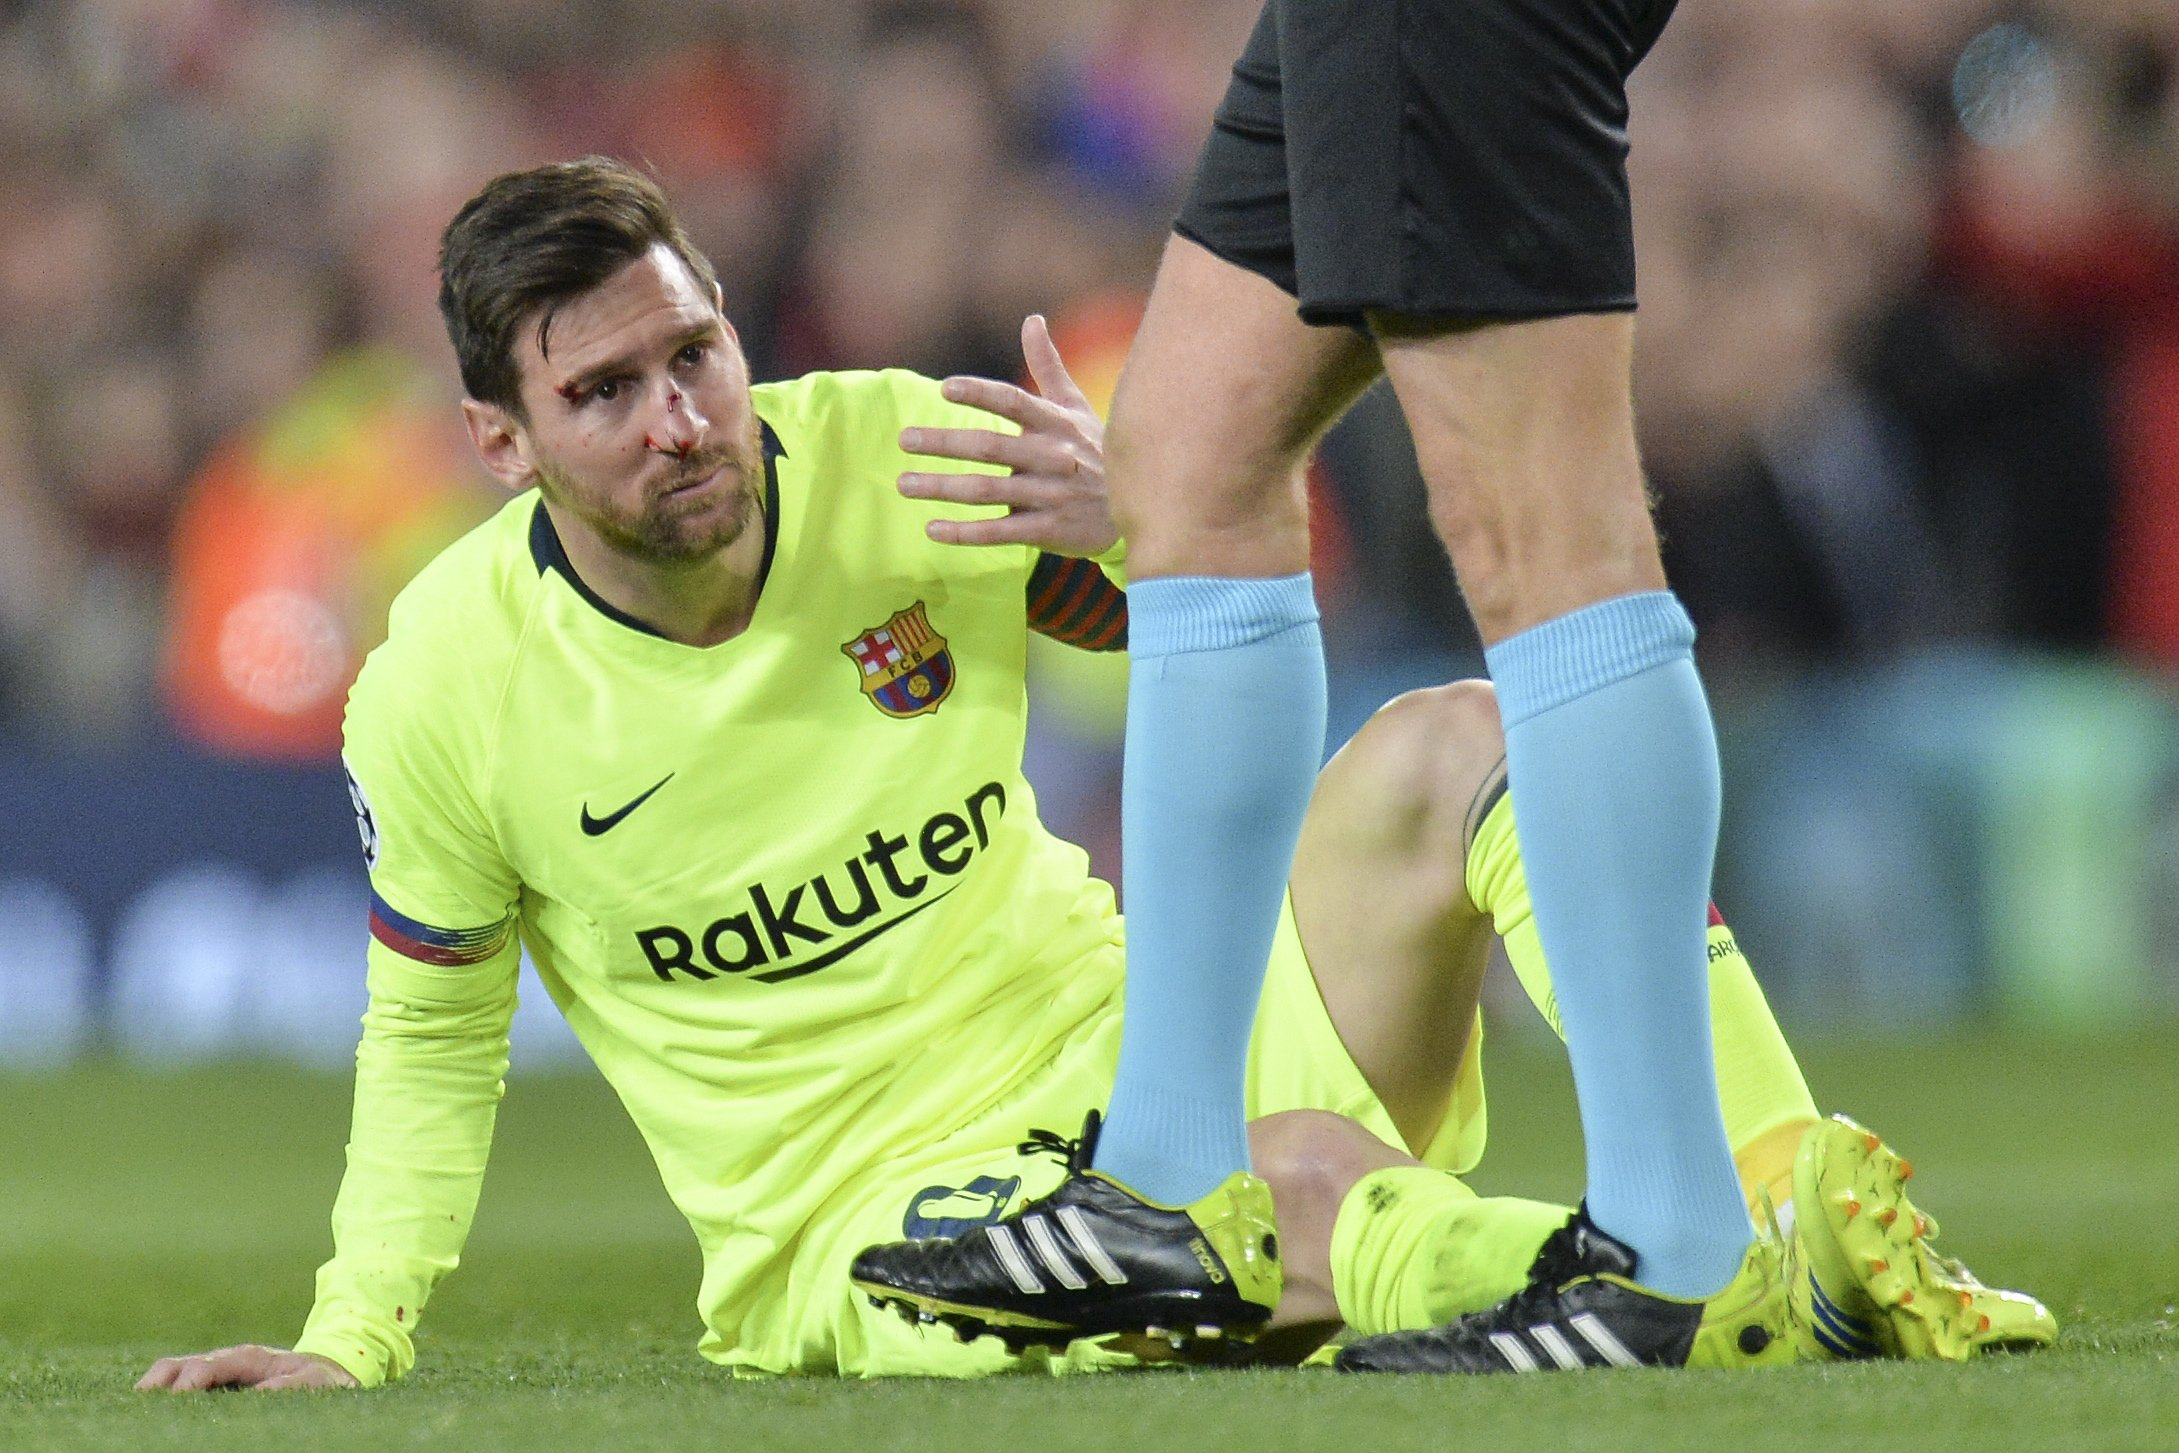 epa07497449 Lionel Messi of FC Barcelona reacts during the UEFA Champions League quarter final, first leg soccer match between Manchester United and FC Barcelona at Old Trafford in Manchester, Britain, 10 April 2019. EPA/PETER POWELL